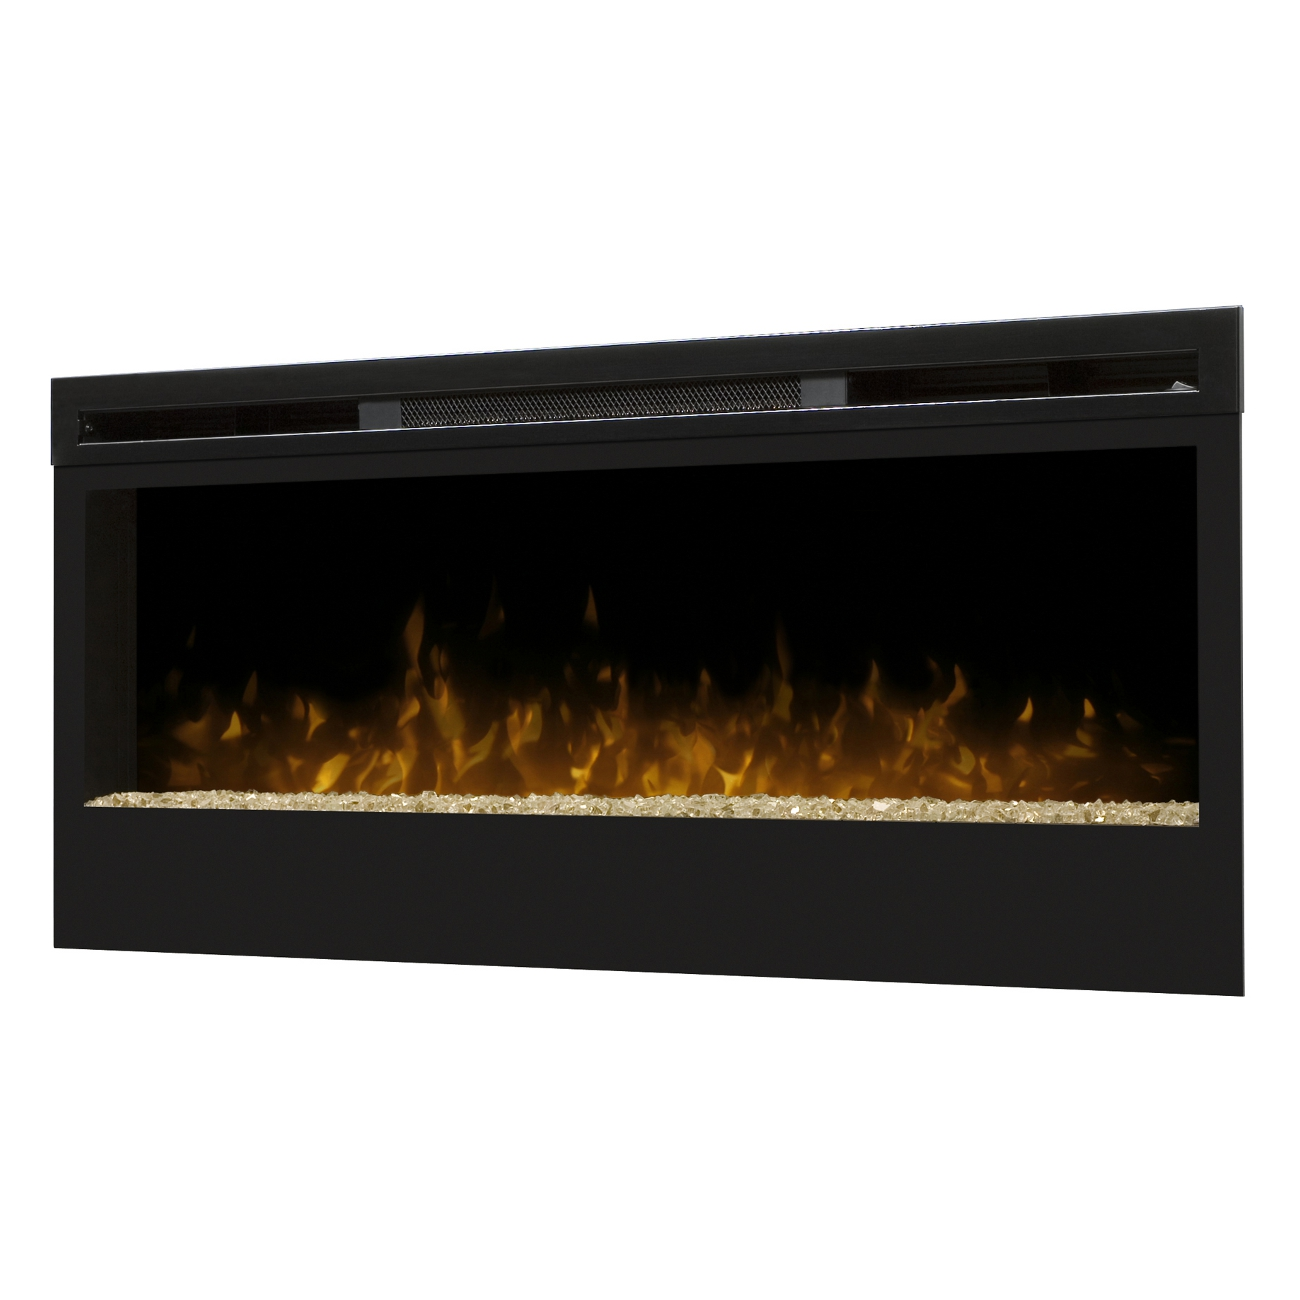 Dimplex 50 Inch Synergy Electric Fireplace Insert Wall Mount BLF50